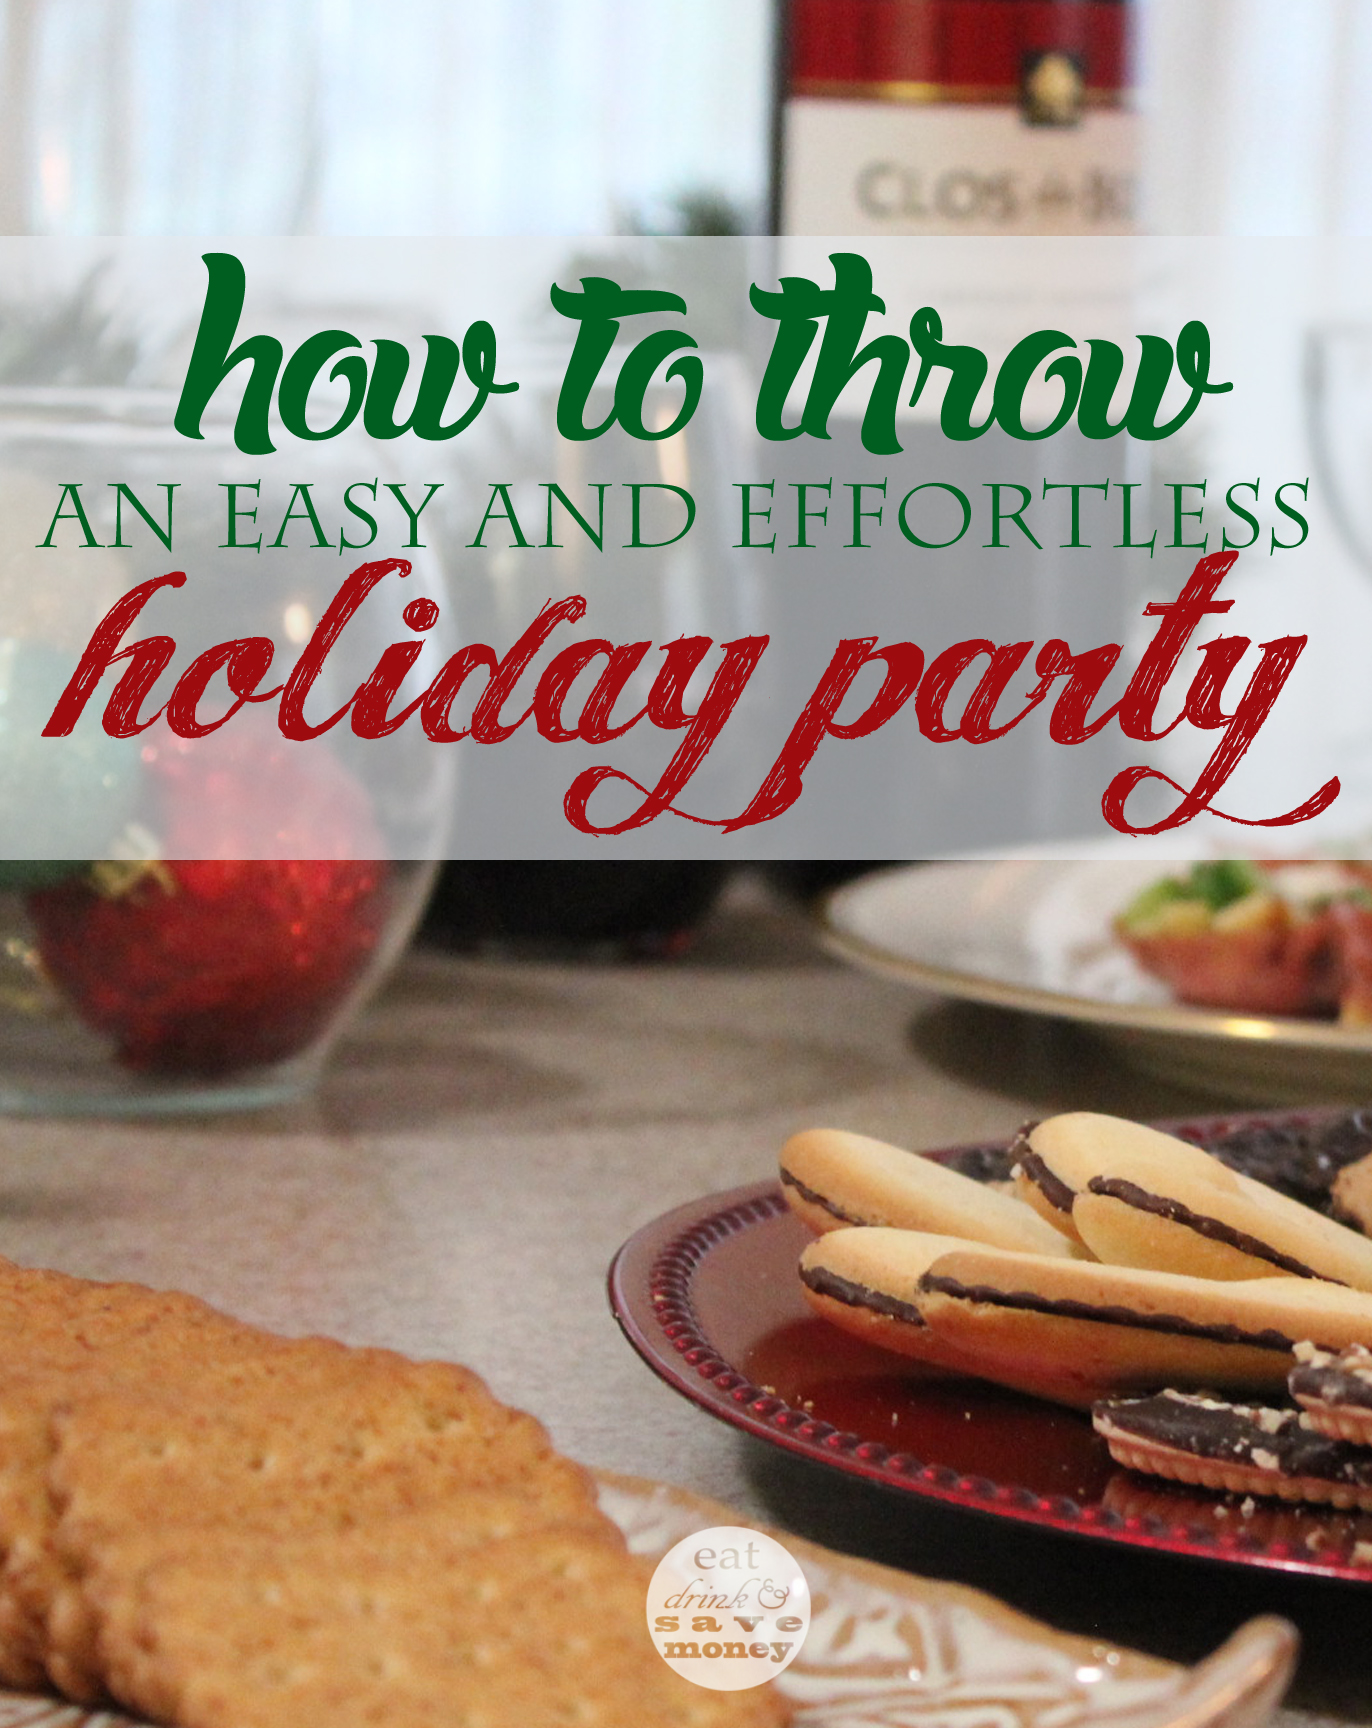 How to throw and easy and effortless holiday party